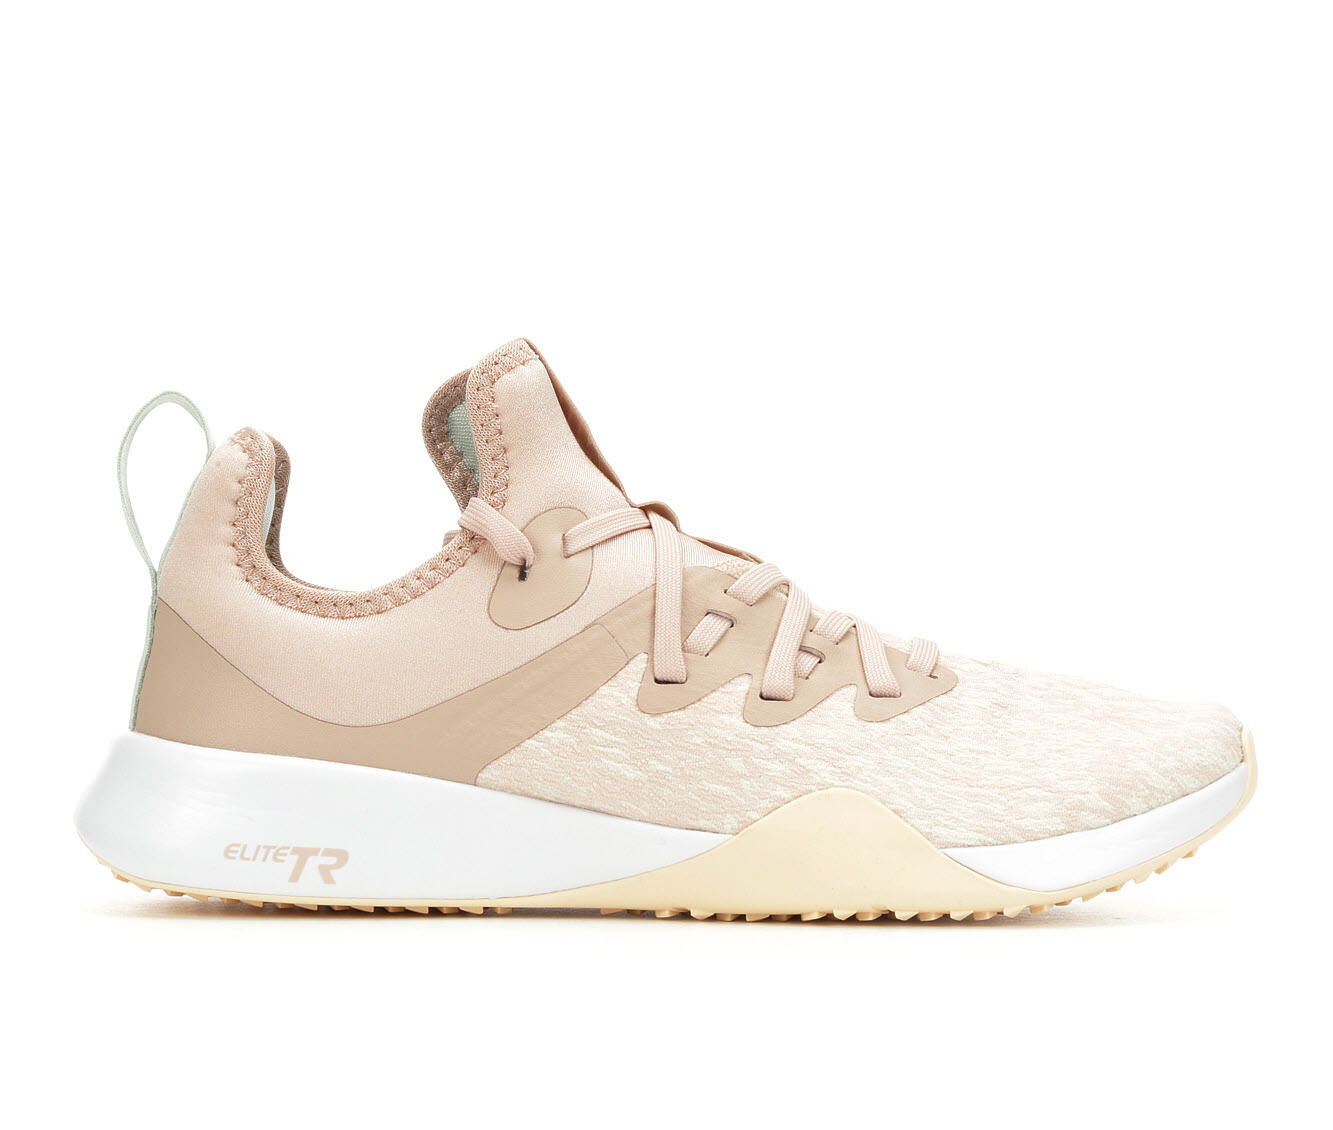 buy online Women's Nike Foundation Elite TR Training Shoes Beige/Guava/Sil